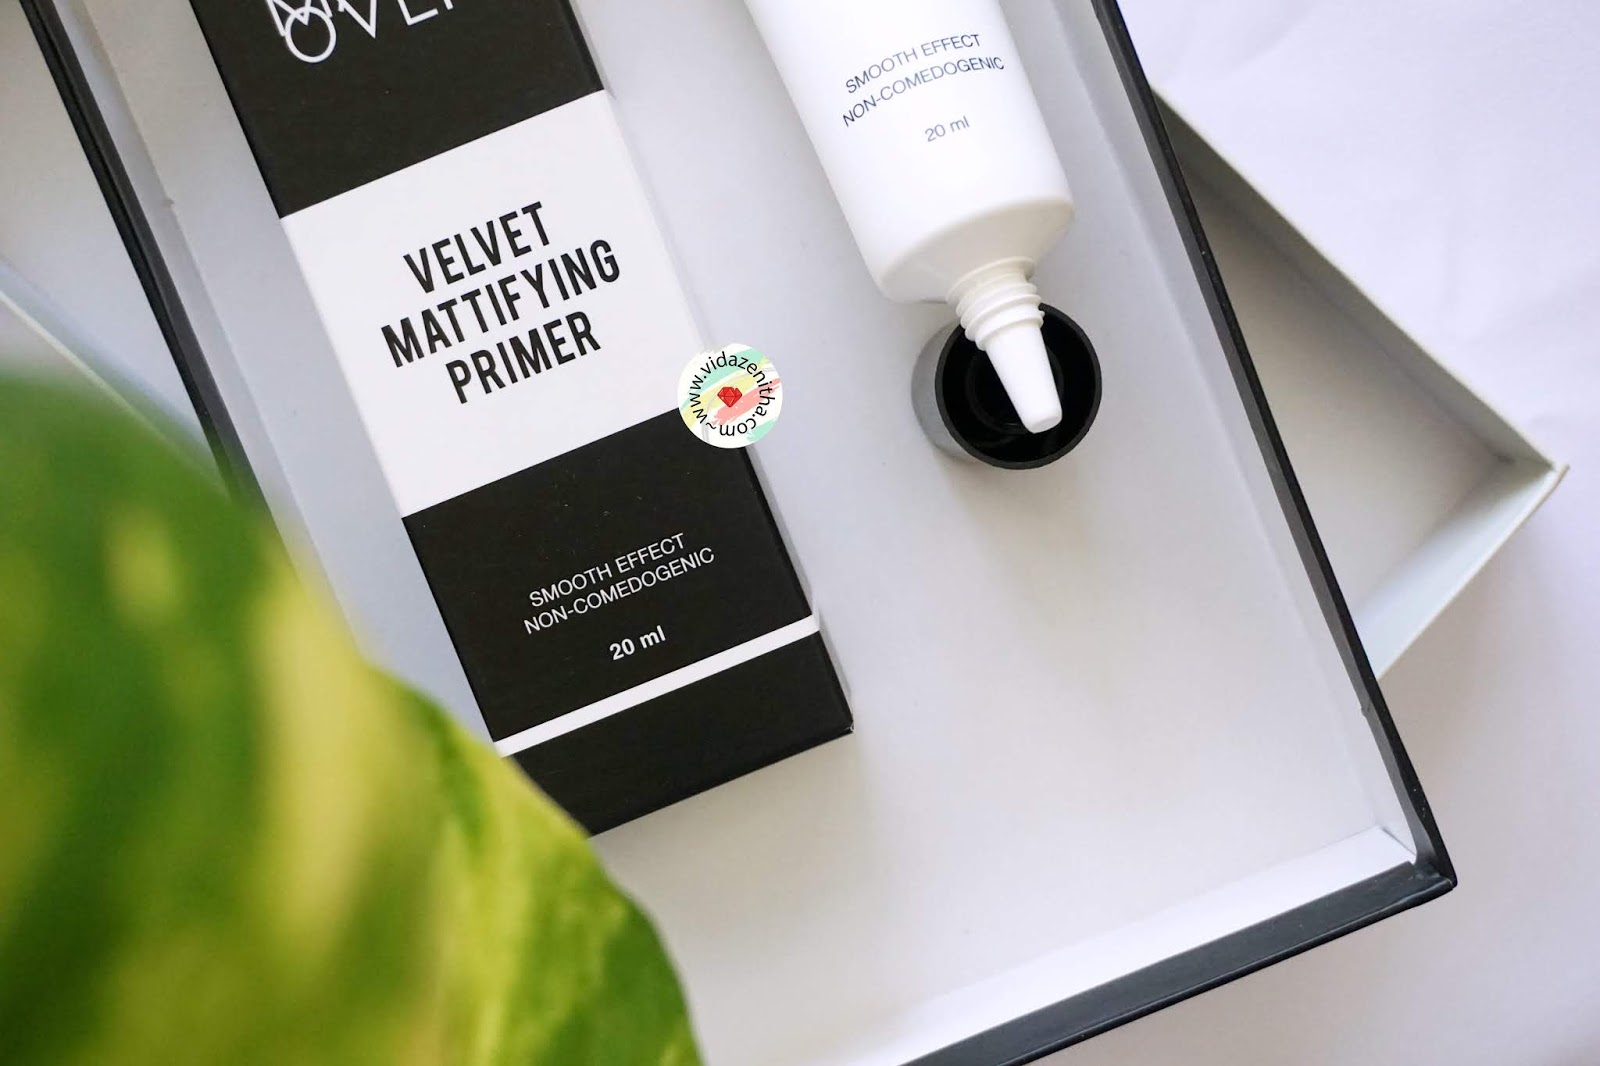 化妆天鹅绒底漆评论| vidazenitha.com/2018/08/review-make-over-velvet-mattifying-primer.html